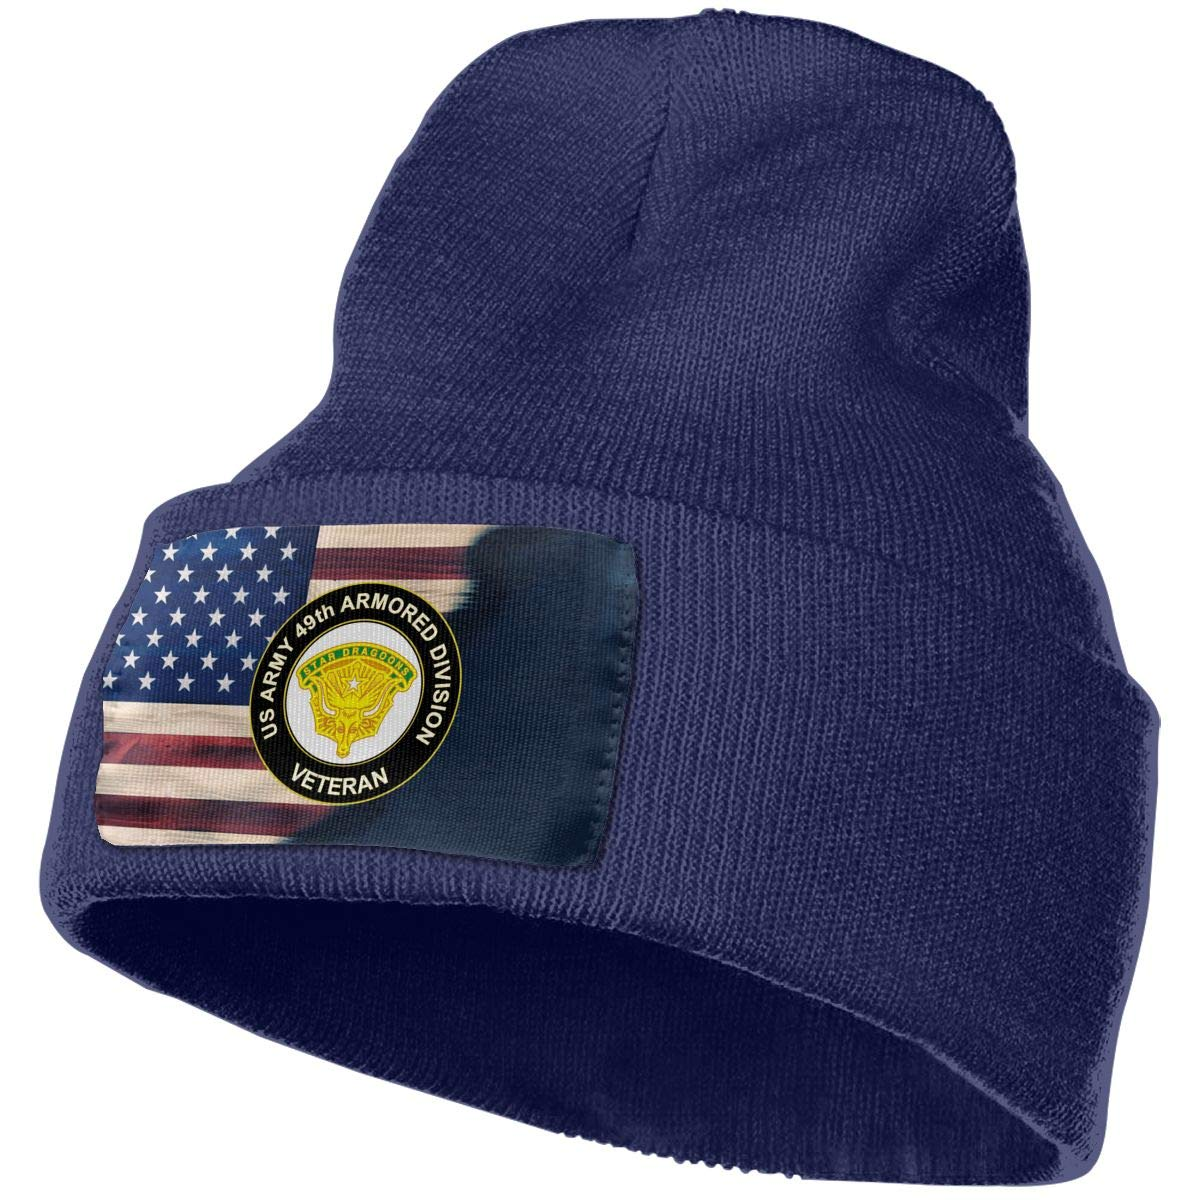 US Army 49th Armored Division Unit Crest Veteran Mens Beanie Cap Skull Cap Winter Warm Knitting Hats.